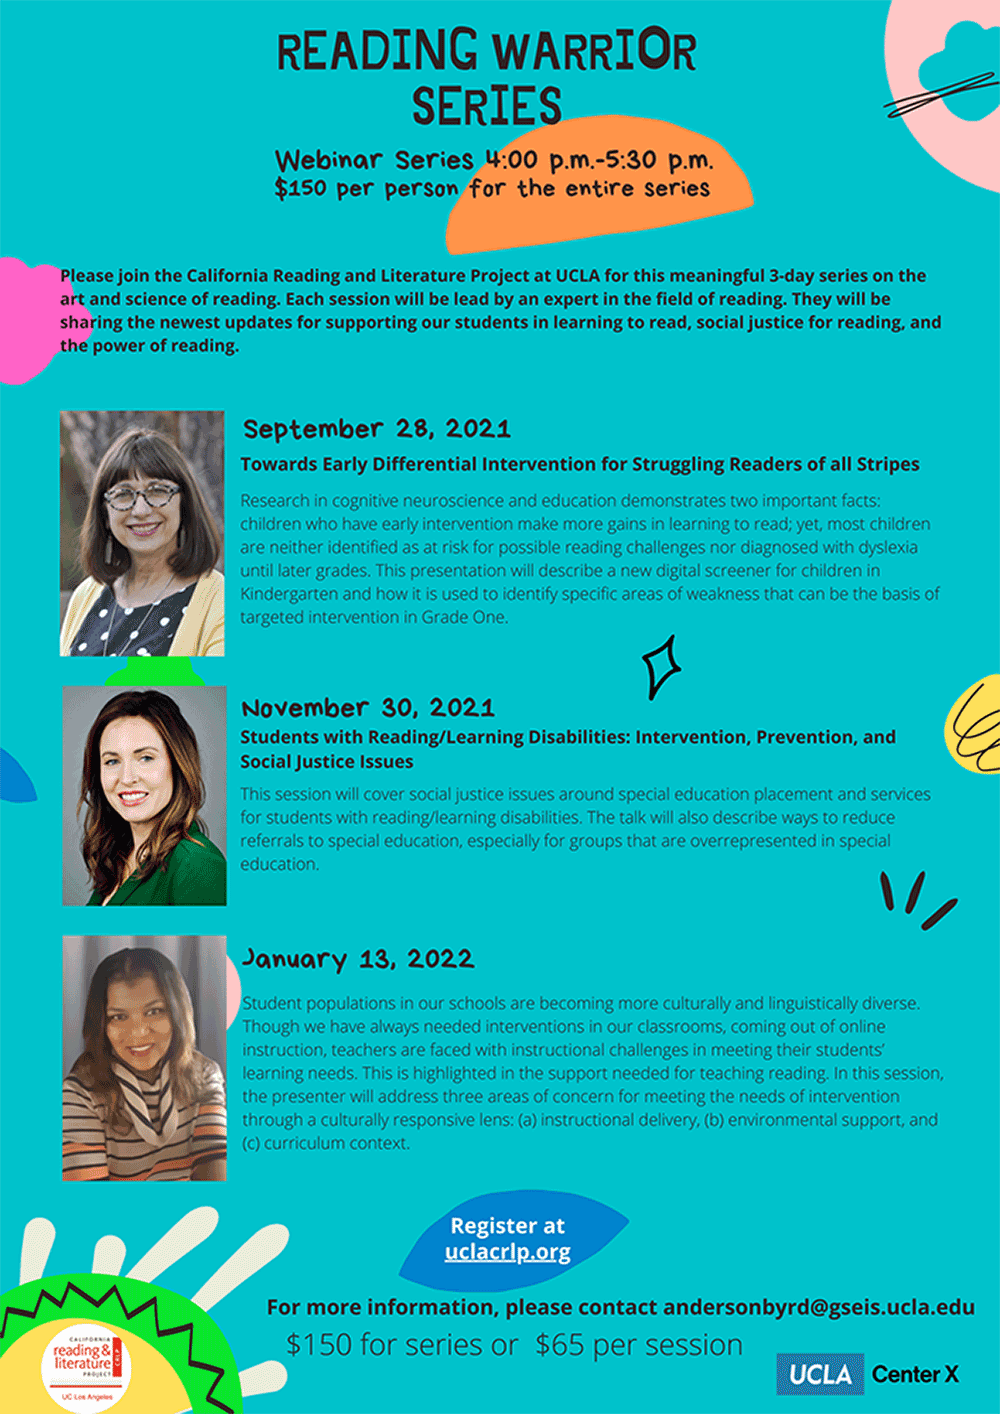 Please join the California Reading and Literature Project at UCLA for this meaningful 3-day series on the art and science of reading. Each session will be led by an expert in the field of reading. They will be sharing the newest updates for supporting our students in learning to read, social justice for reading, and the power of reading.